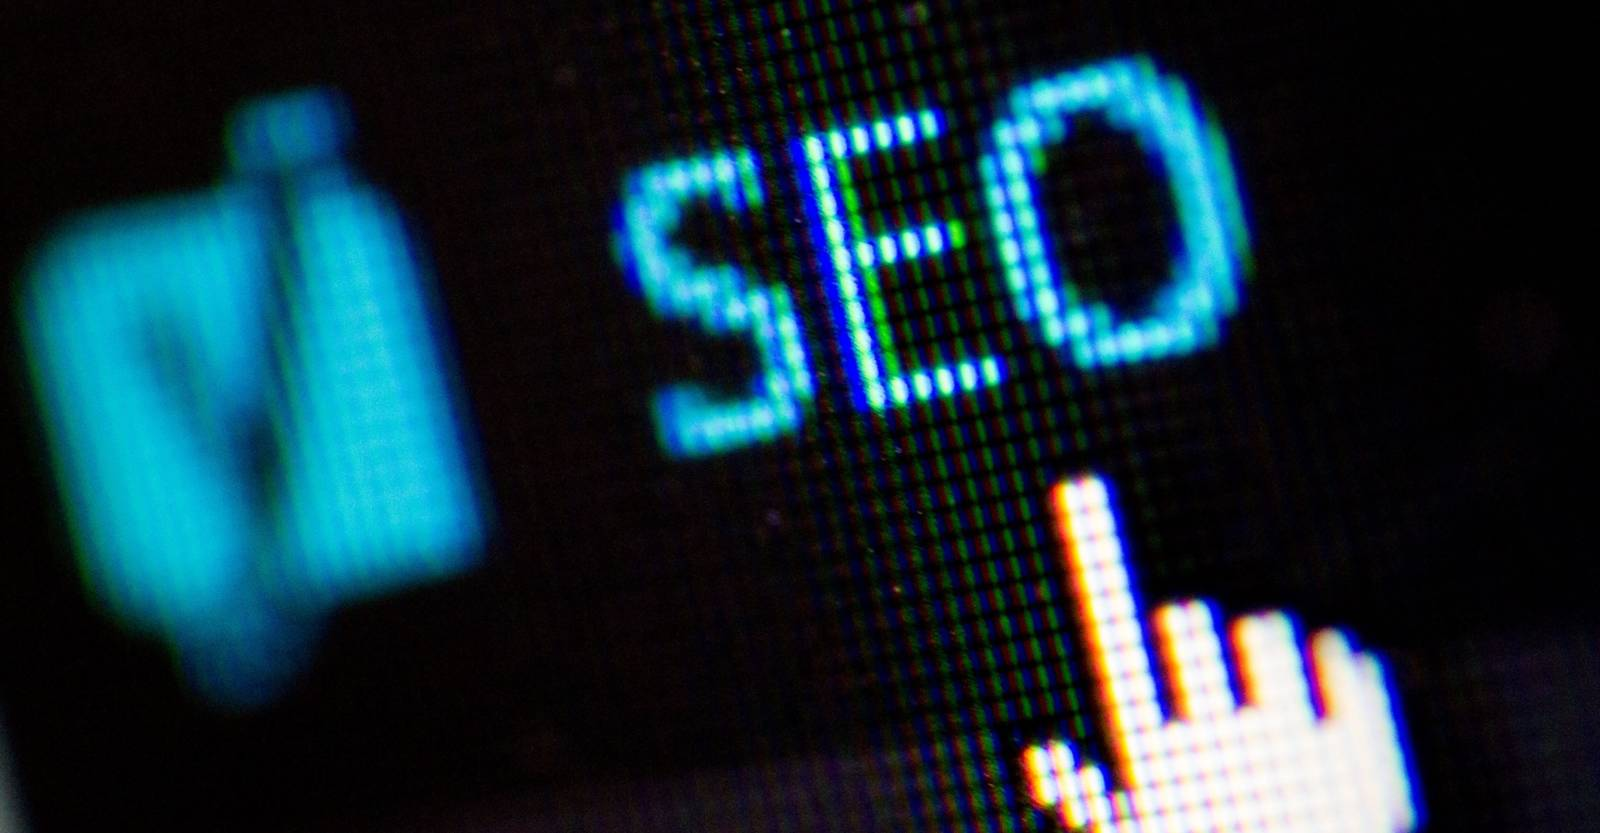 SEO Tips to Improve Ranking on Search Engine Results